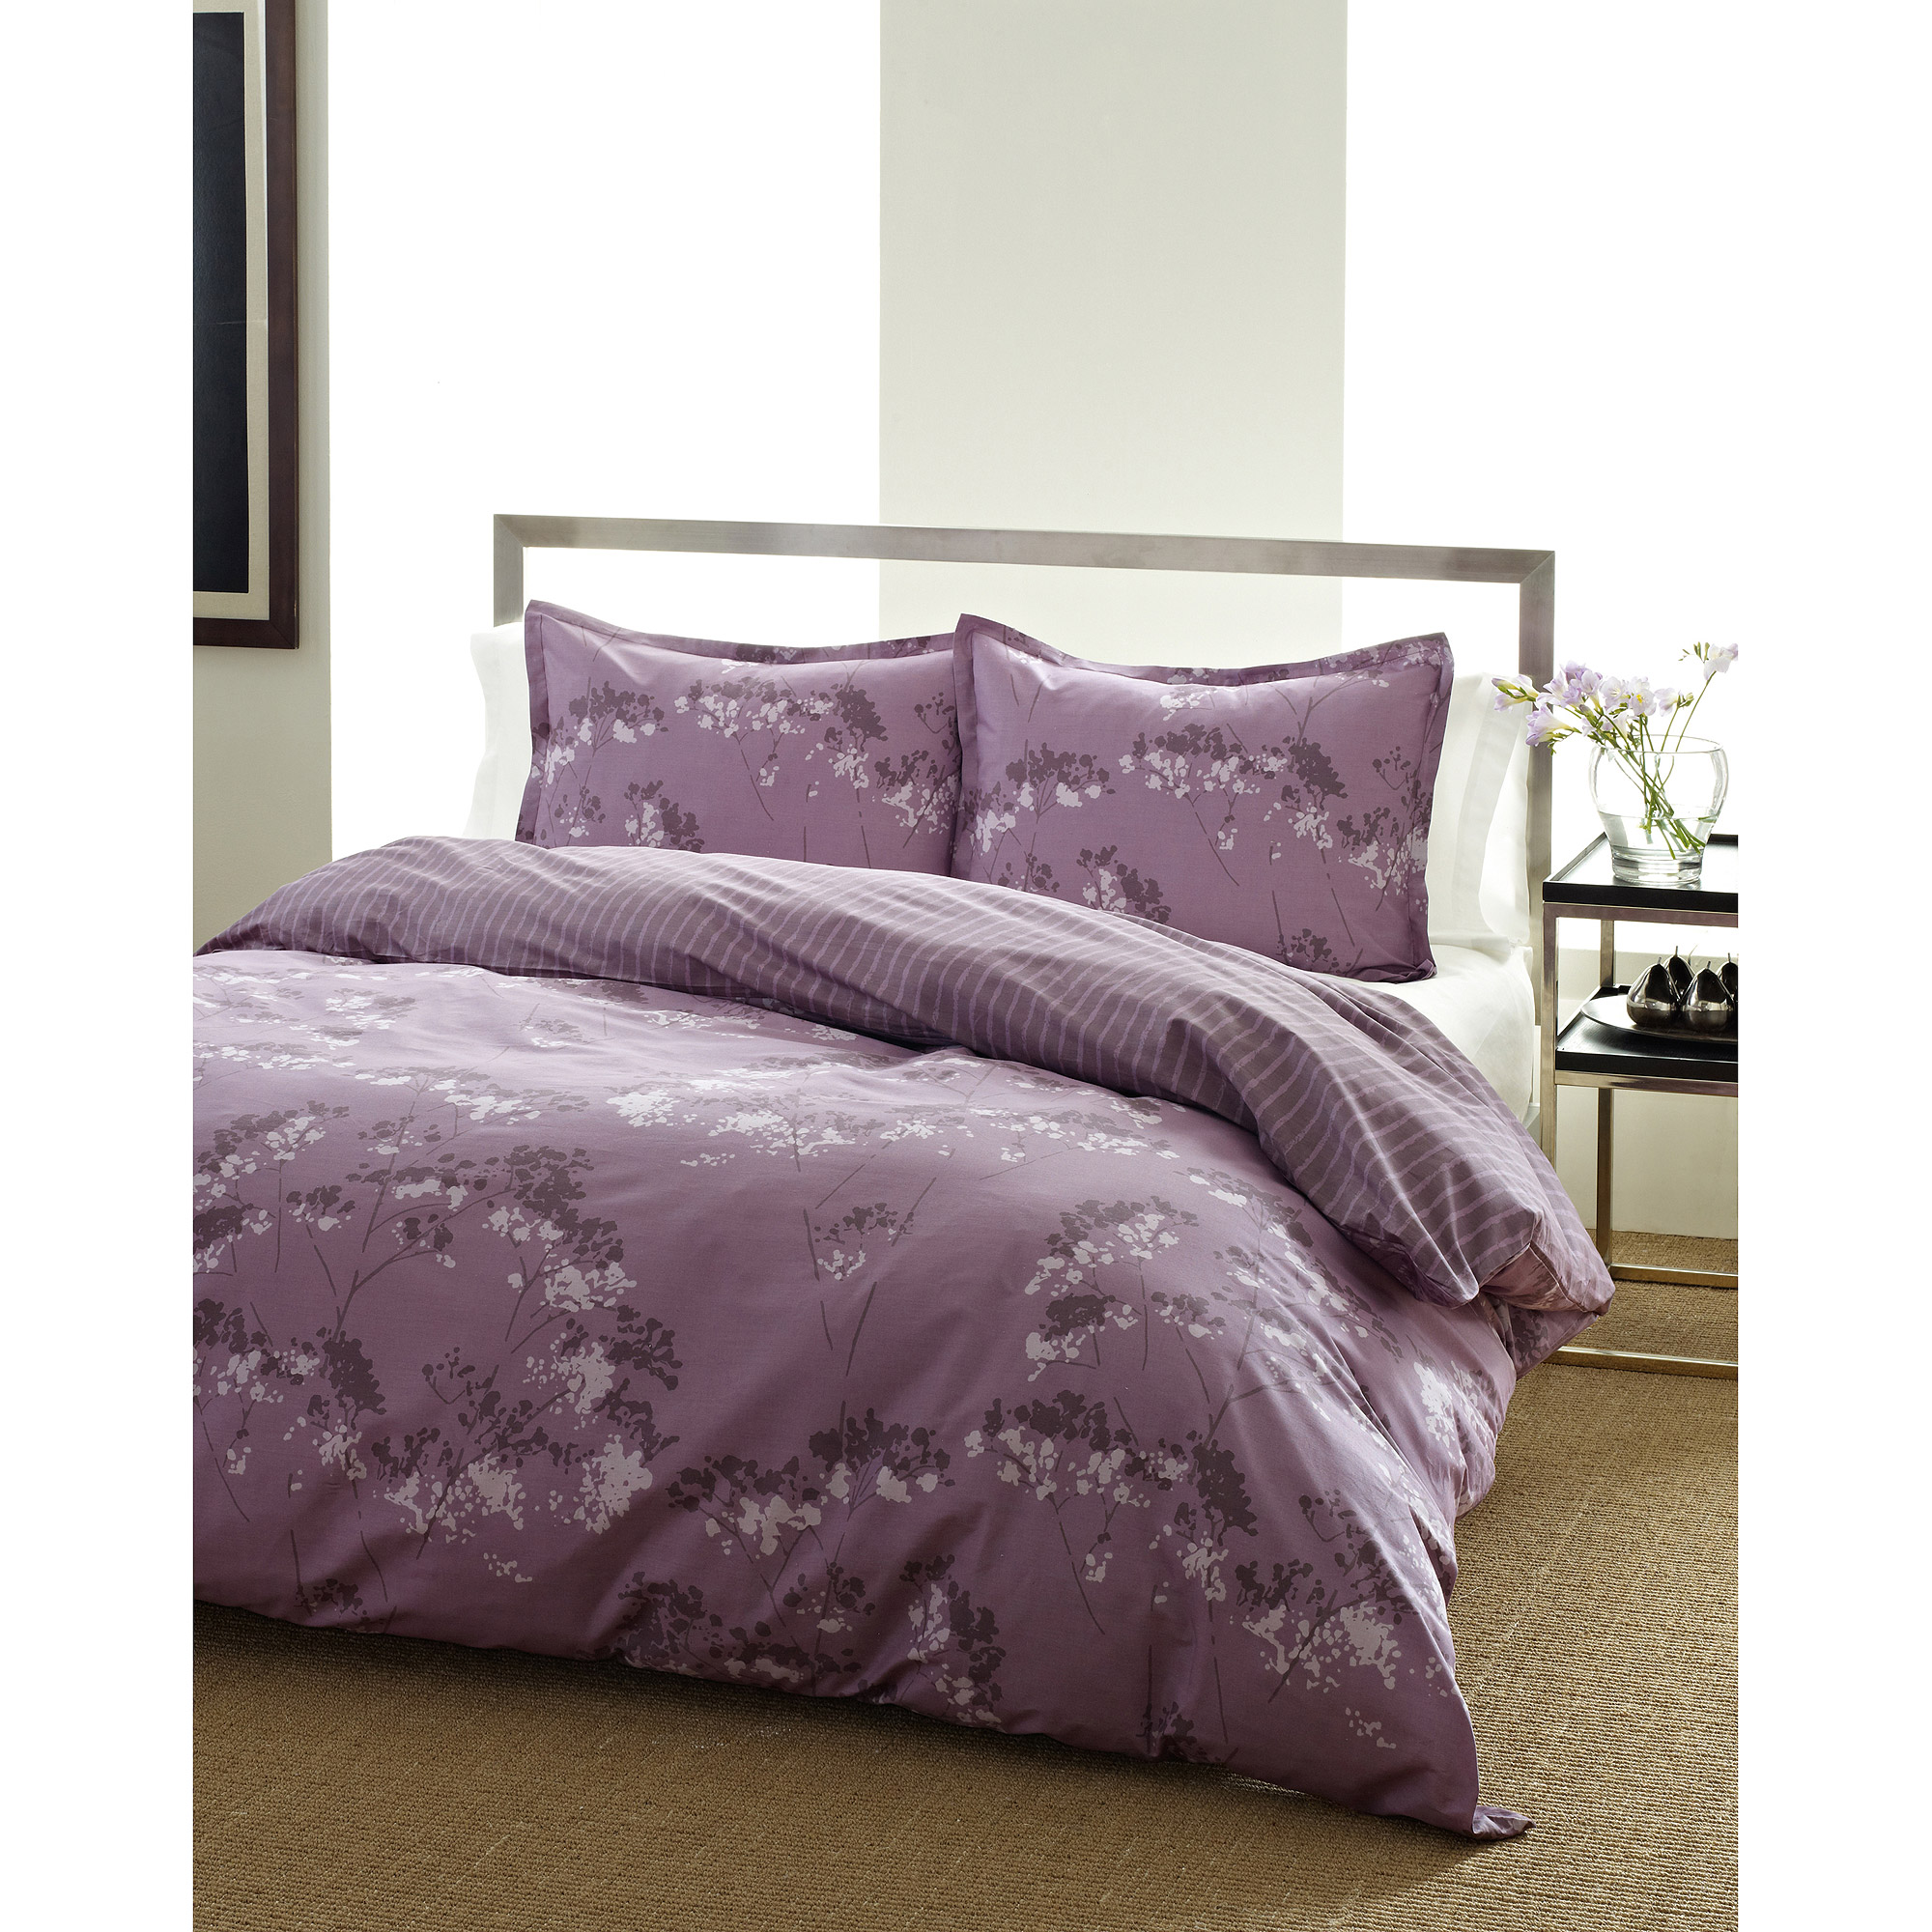 bedspread bedding size bed king from furry in twin pastel cover tassels set light home princess cotton queen prod spin artistic with sets purple decoration stripe friends duvet comforter wedding linen eggplant turtle